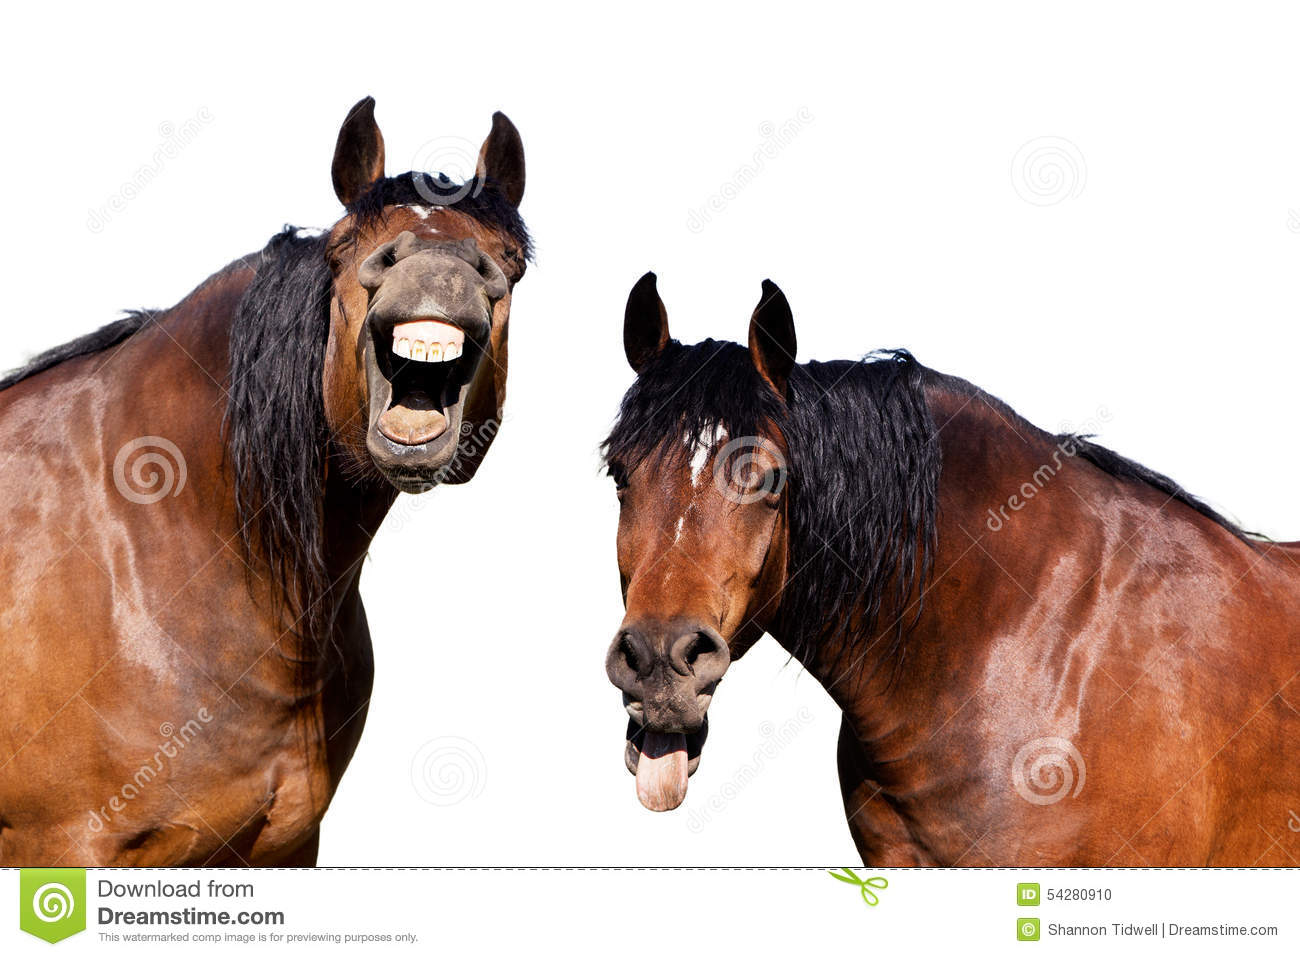 Download Laughing horses stock photo. Image of hysterical, humor - 54280910